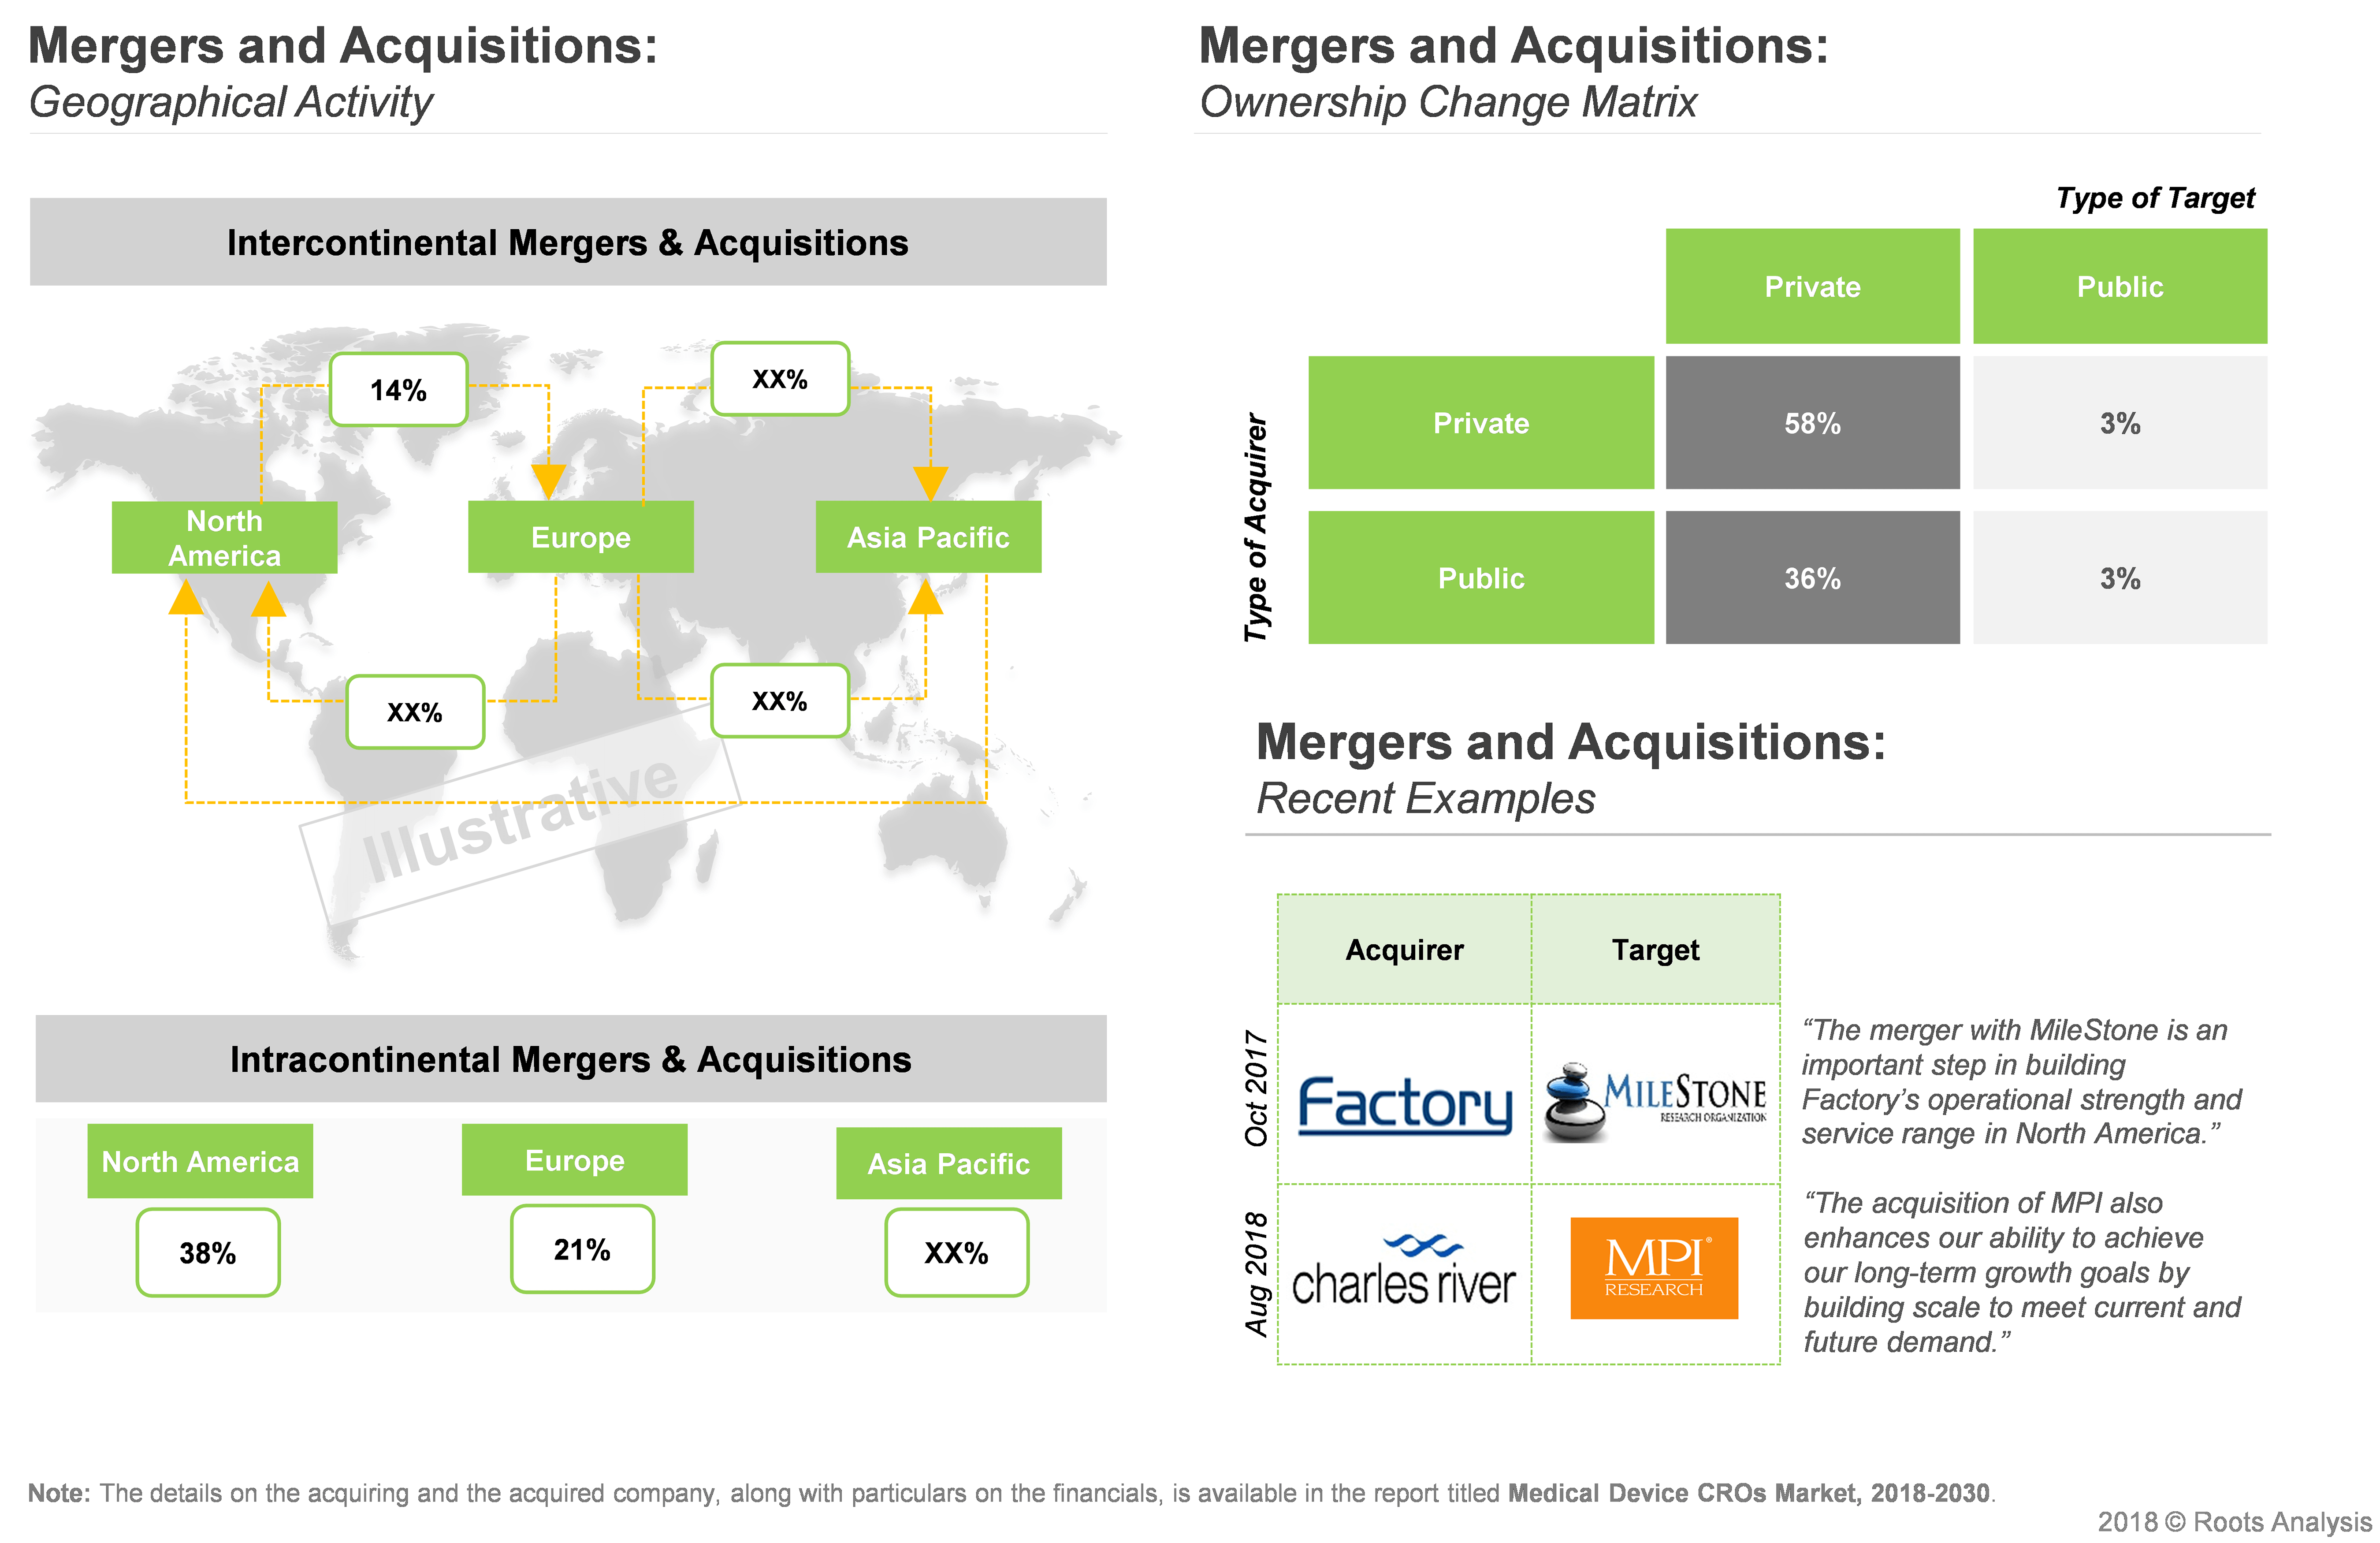 Medical Device Companies, Medical Device Market Research - Mergers and Acquisitions